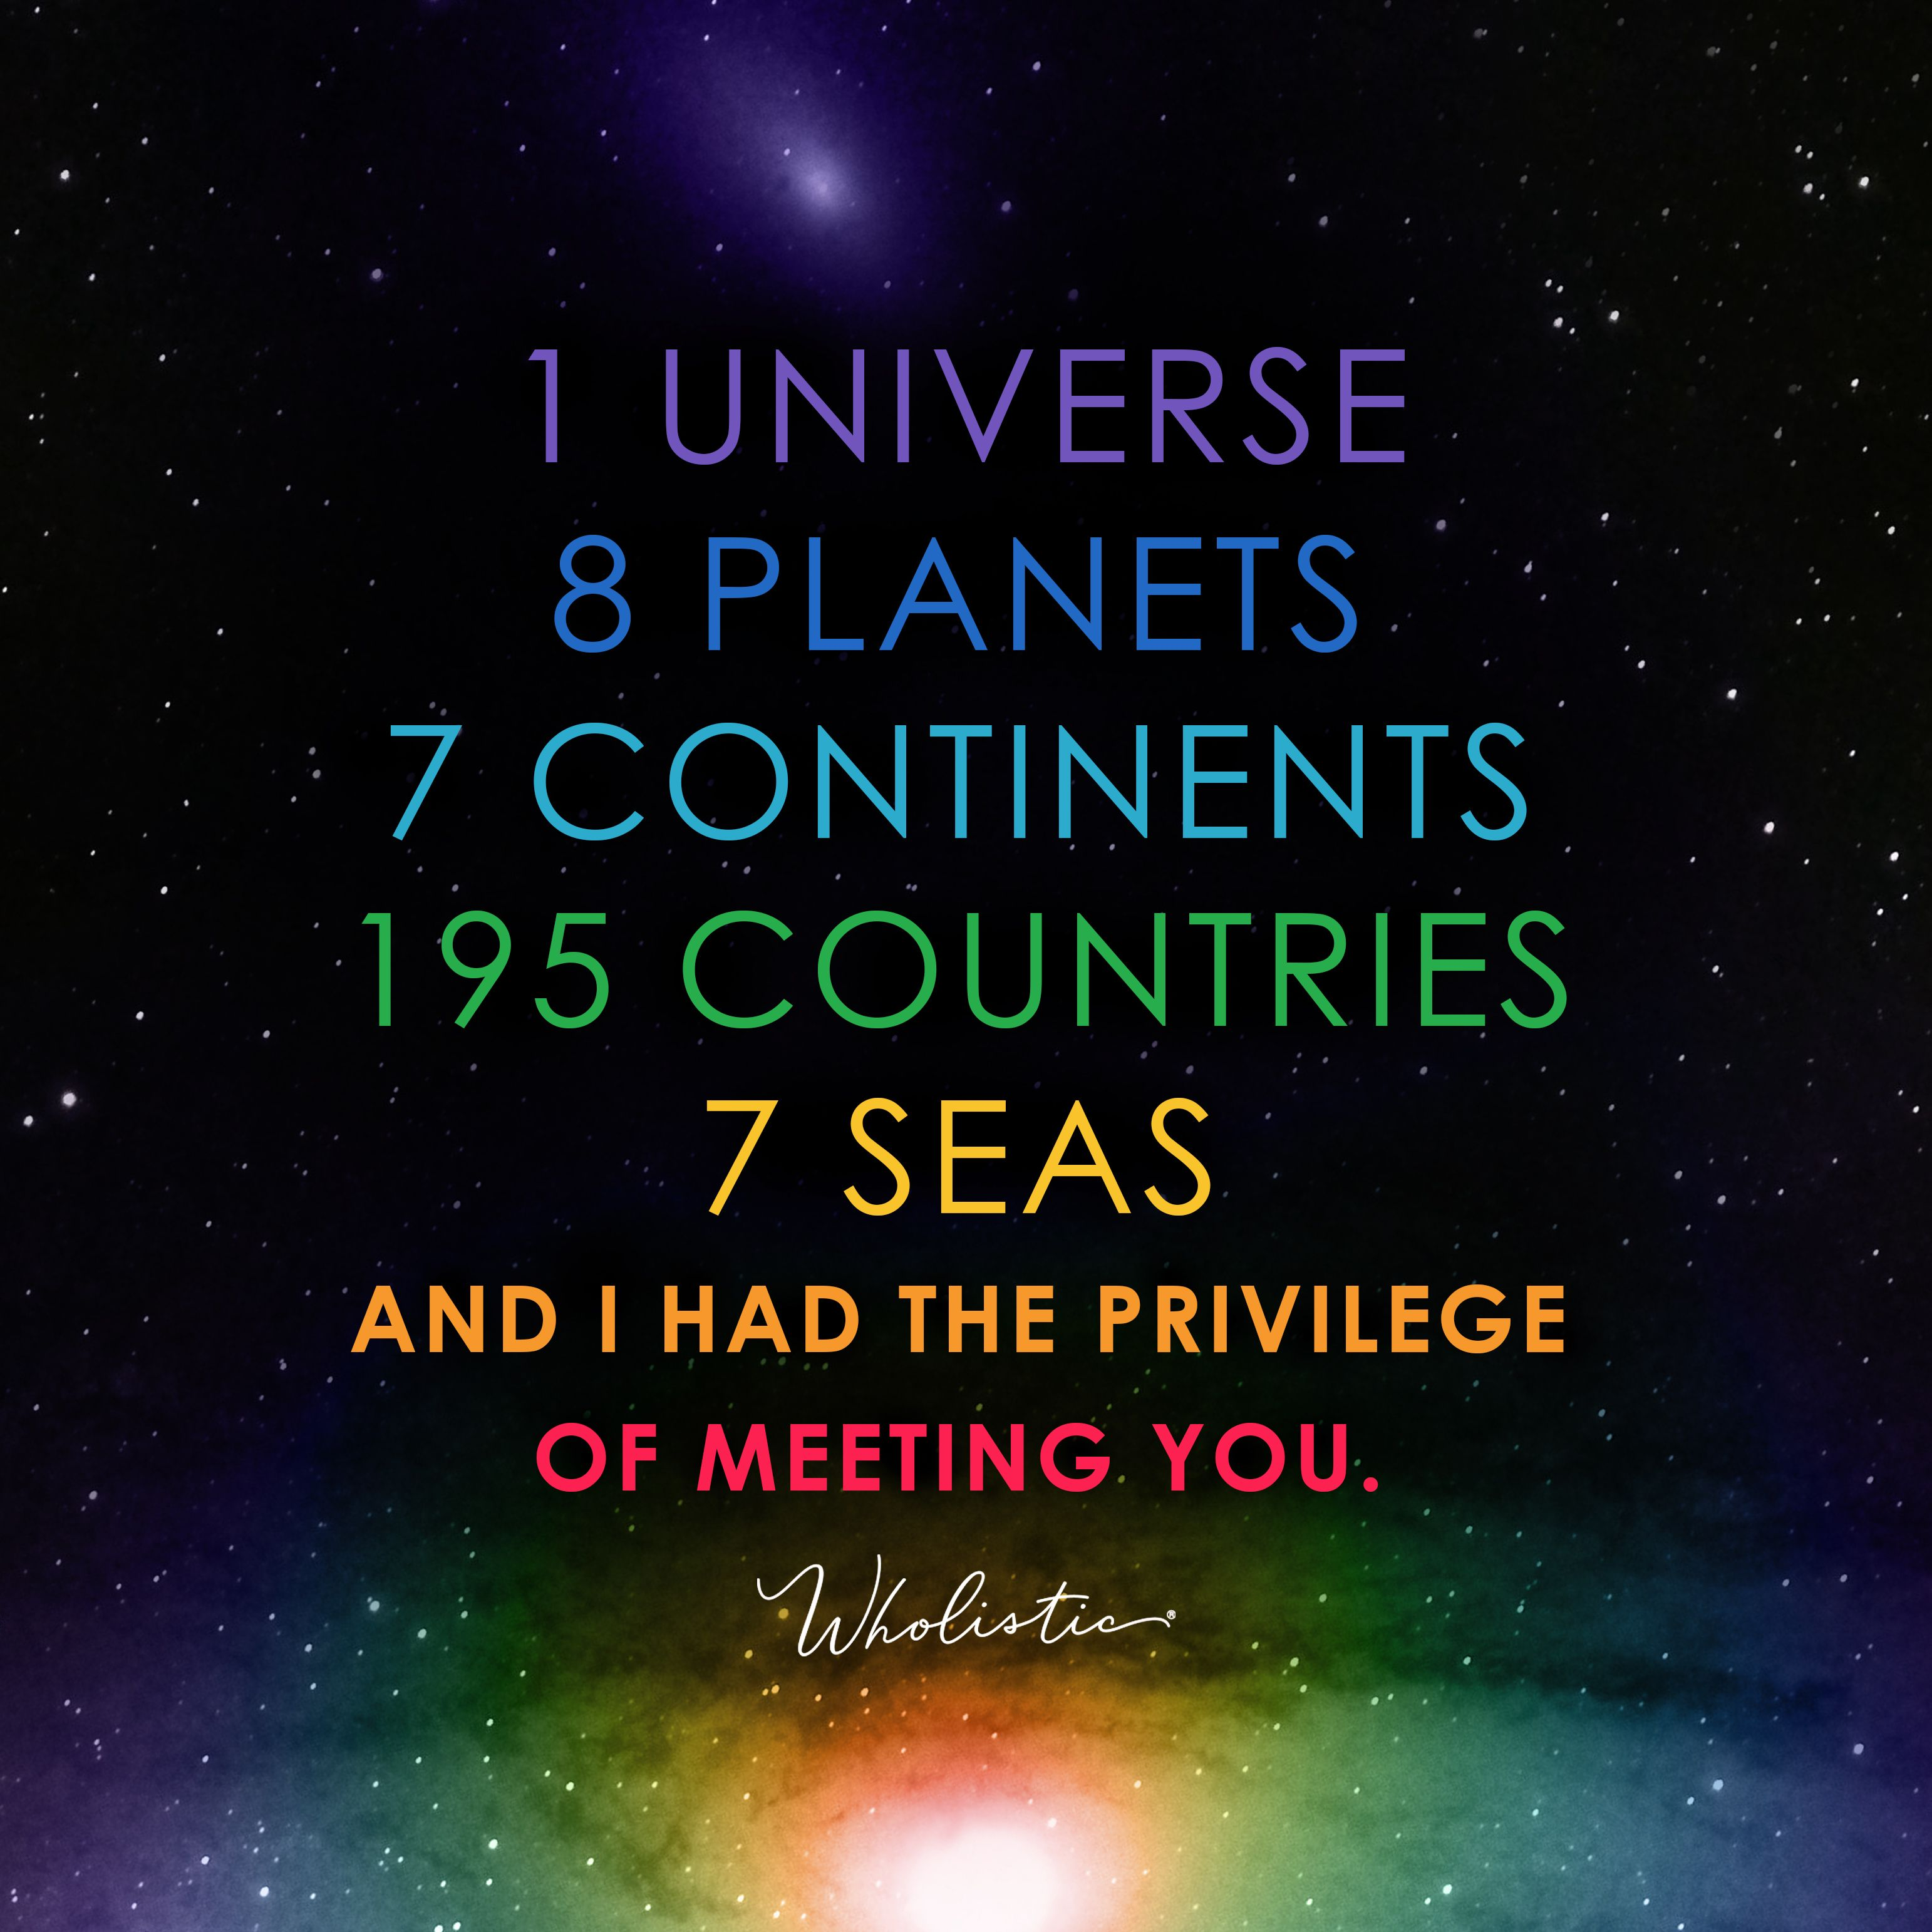 Quote 1 Universe 8 Planets 7 Continents 195 Countries 7 Seas